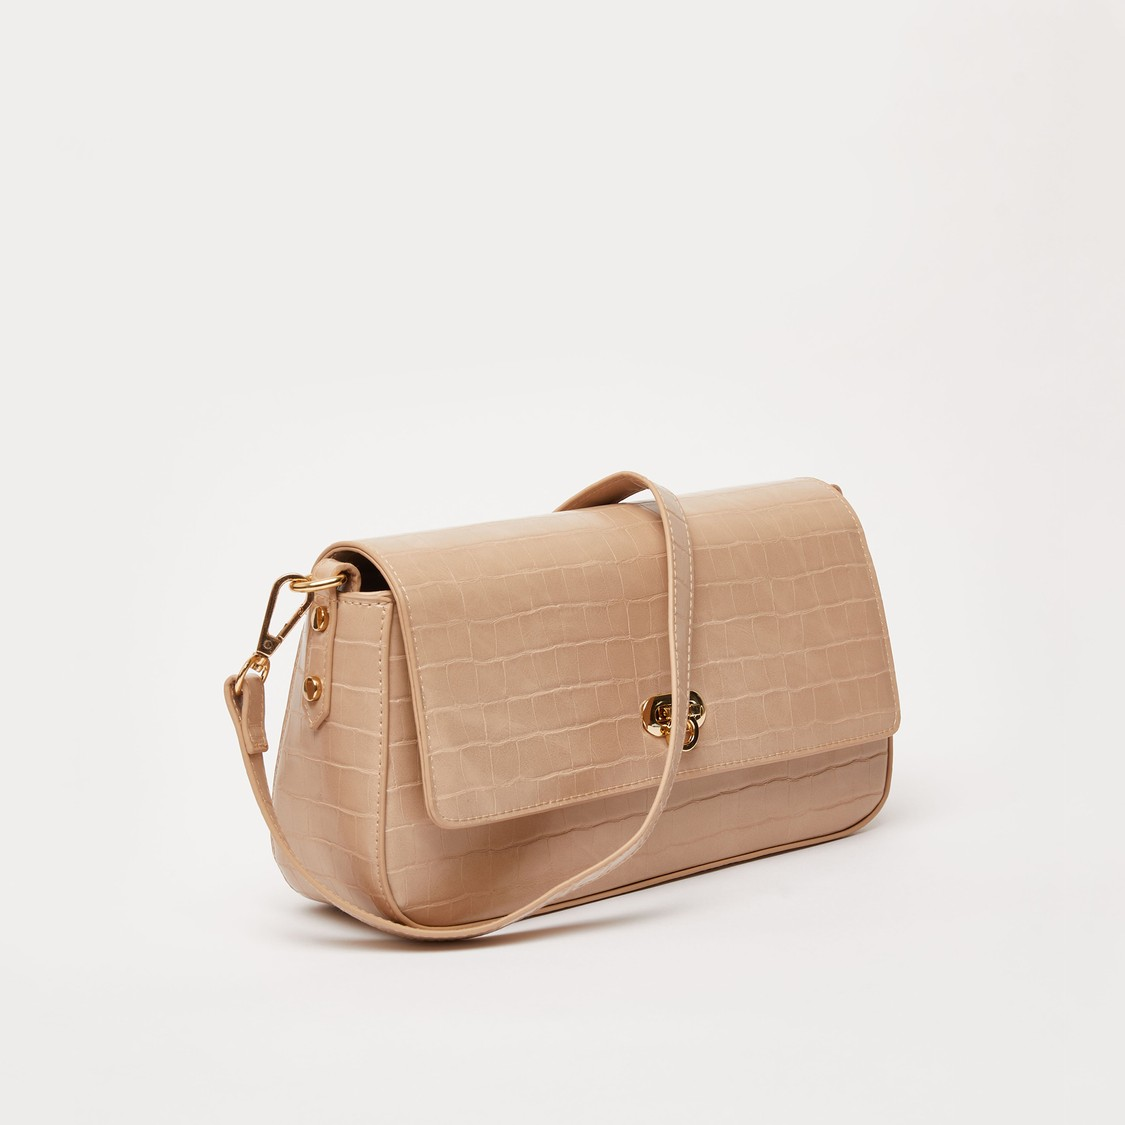 Textured Crossbody Bag with Detachable Strap